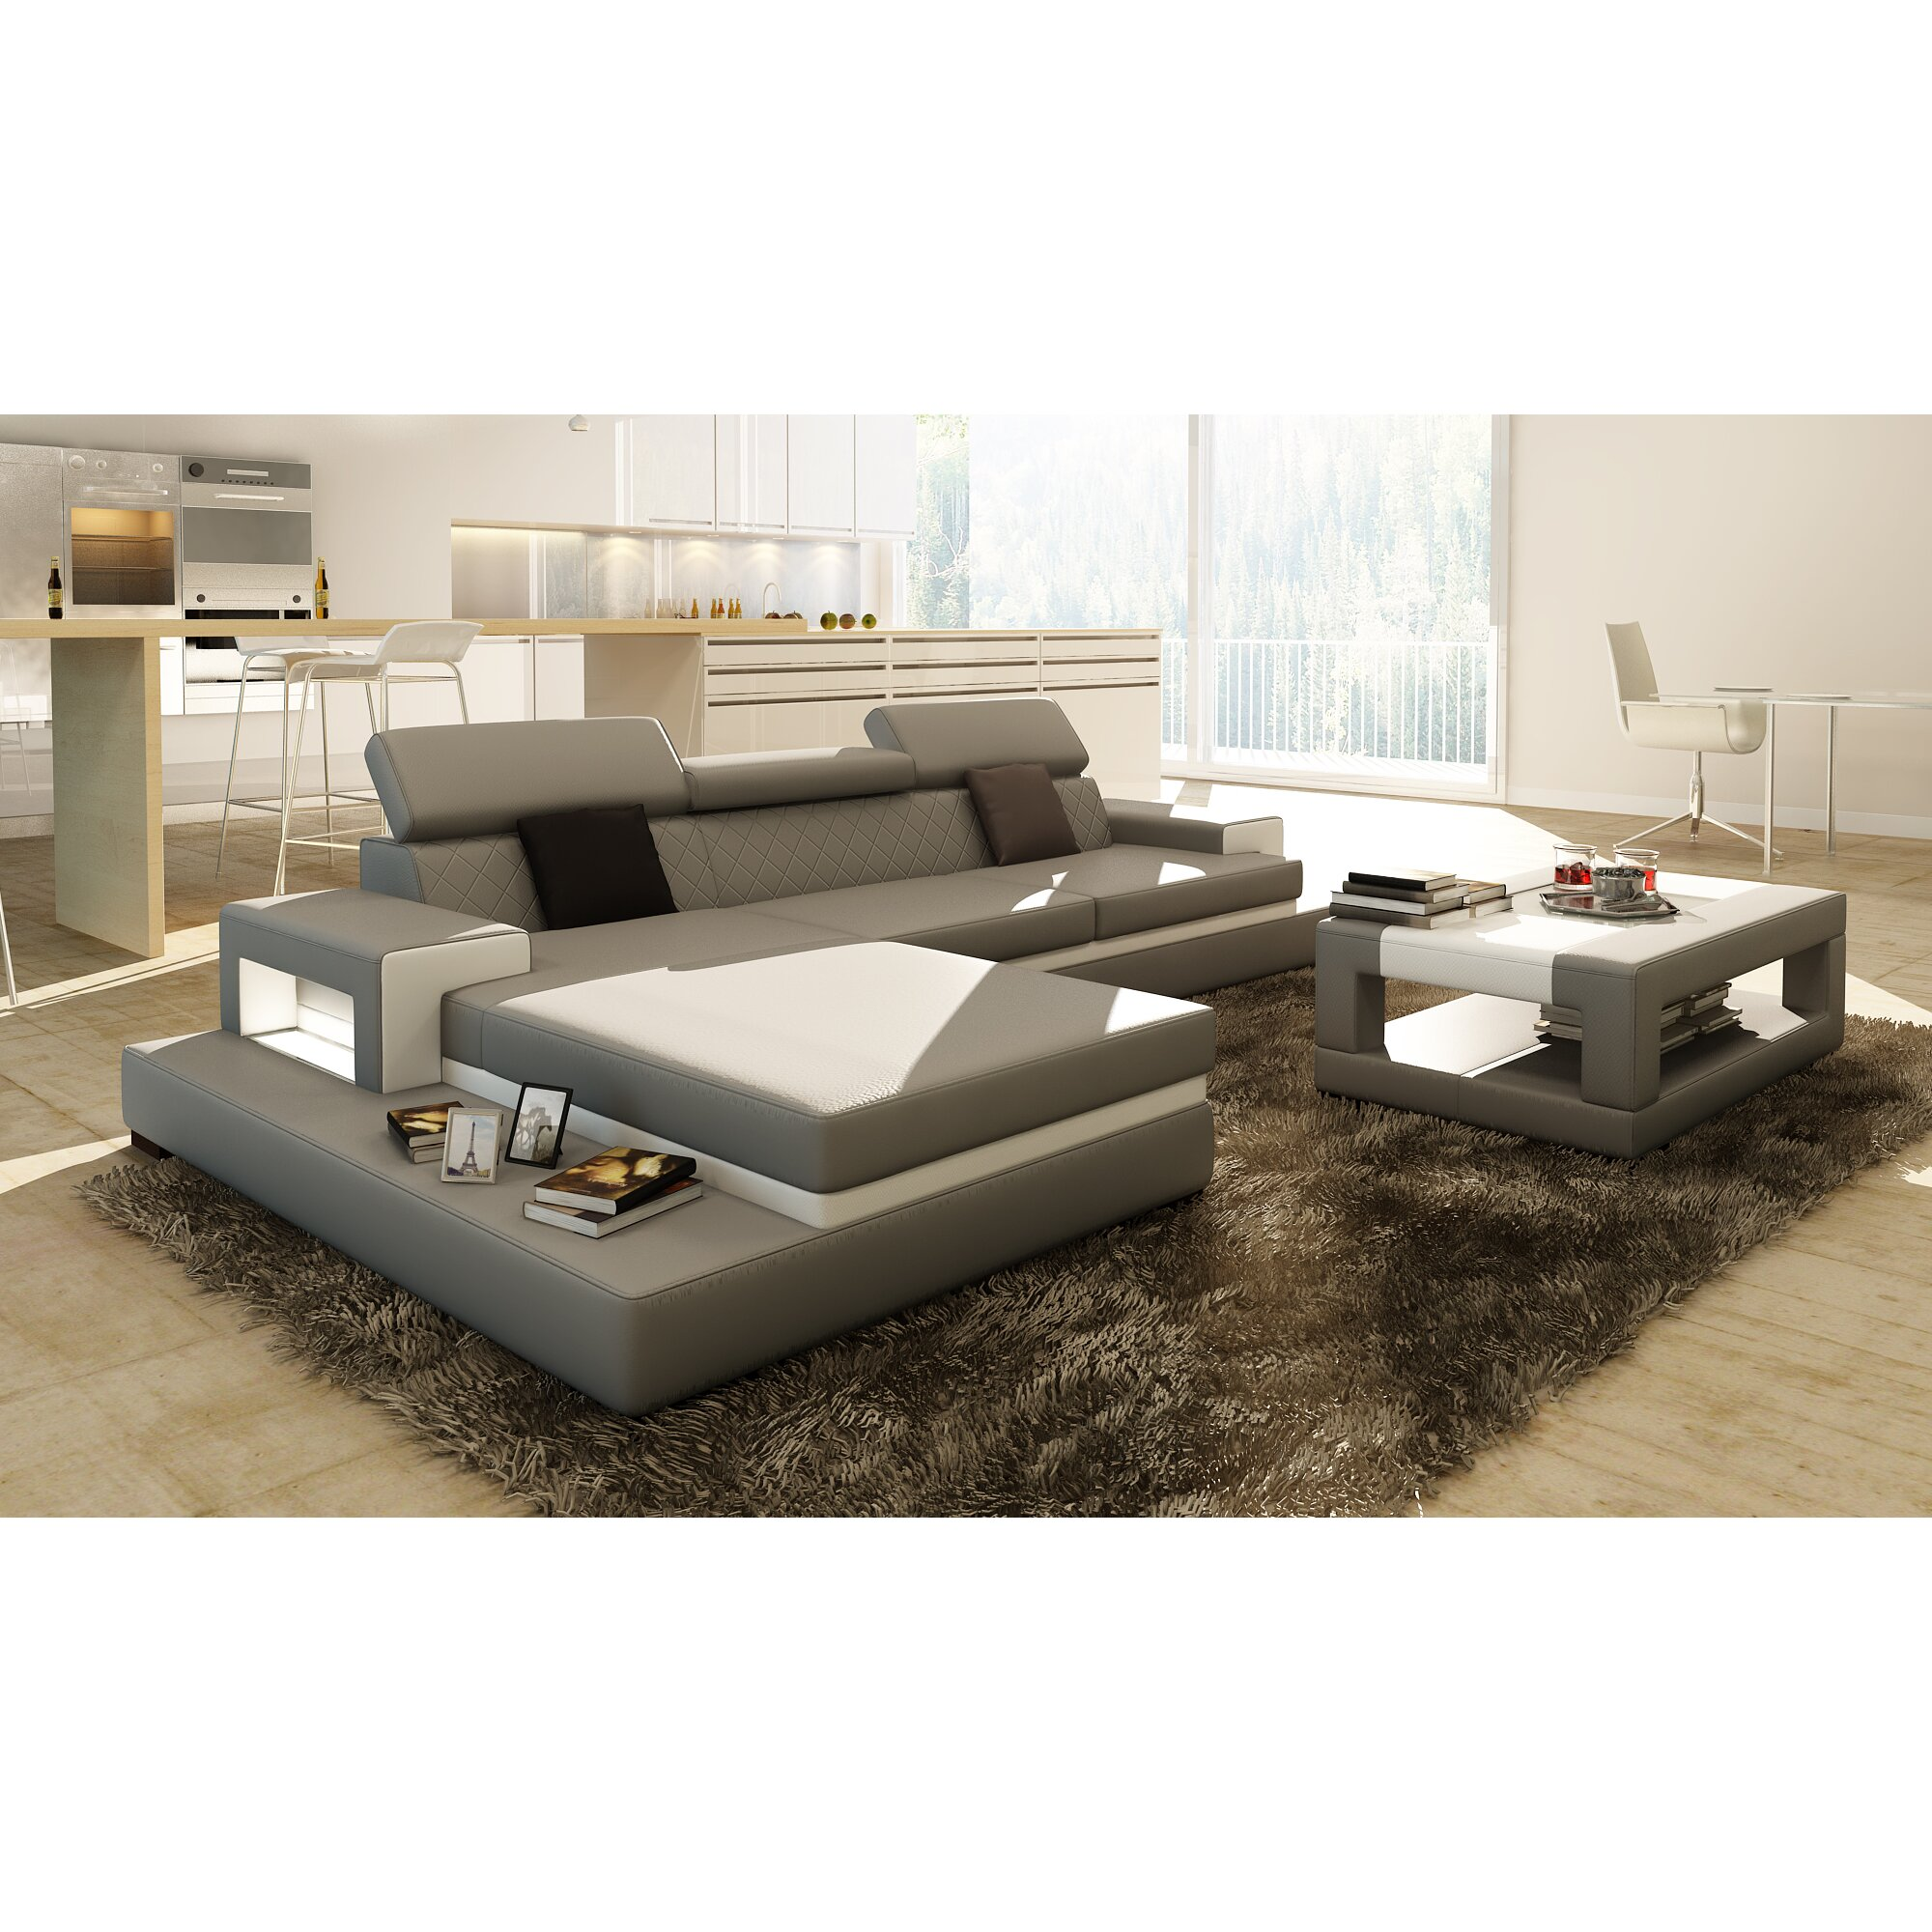 hokku designs sophia three piece grey leather sectional